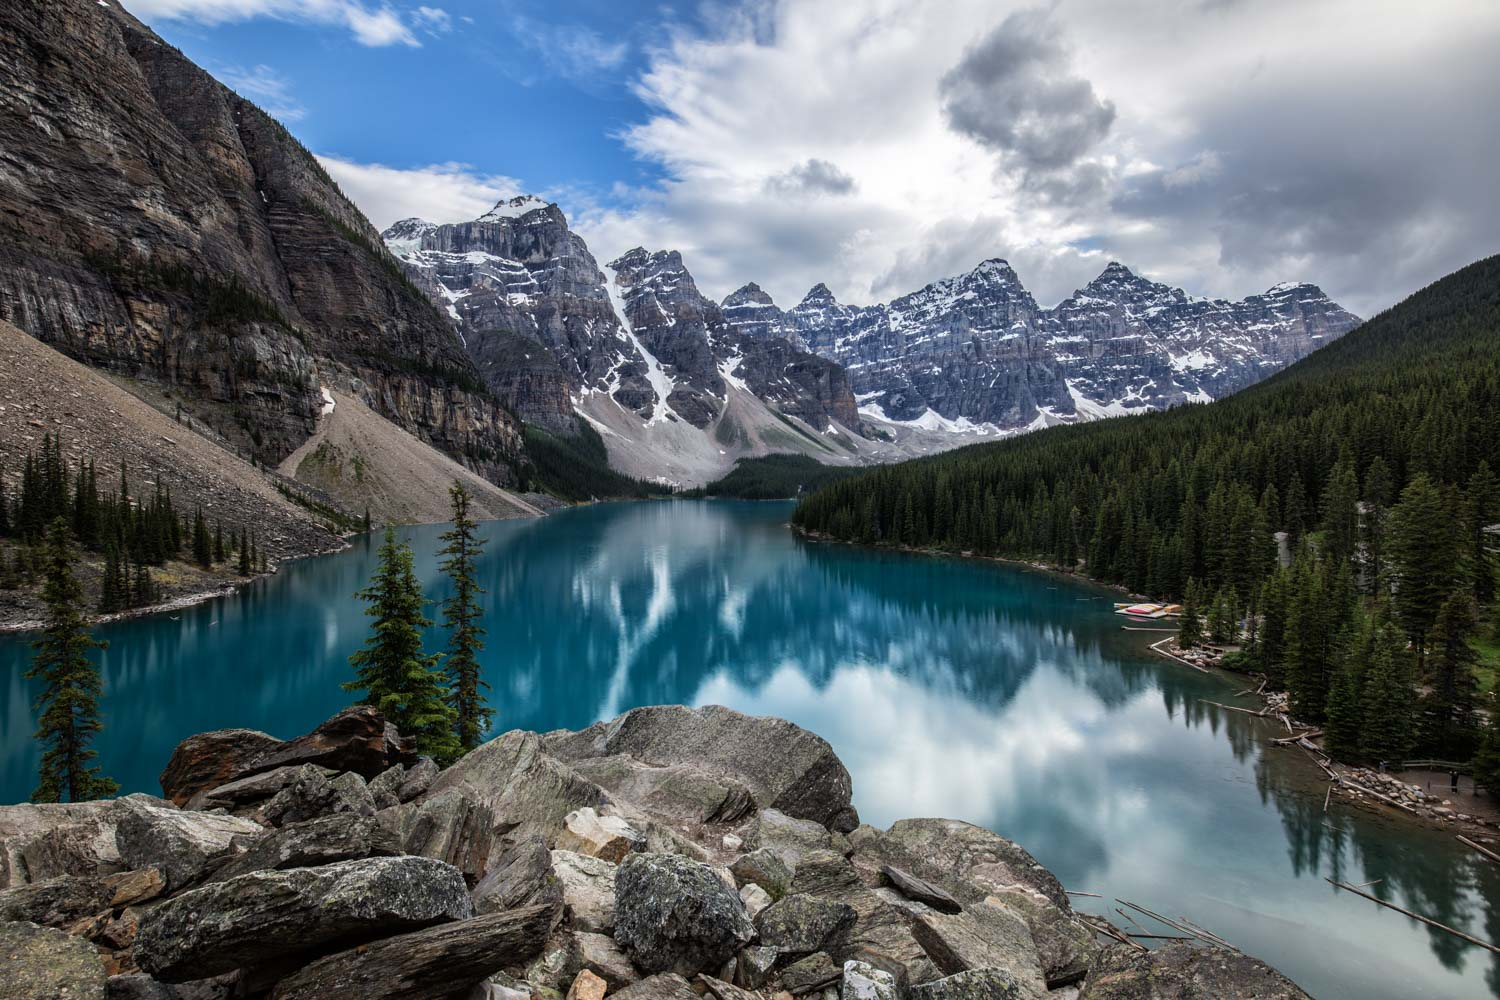 Moraine Lake at Lake Luise, Canada.